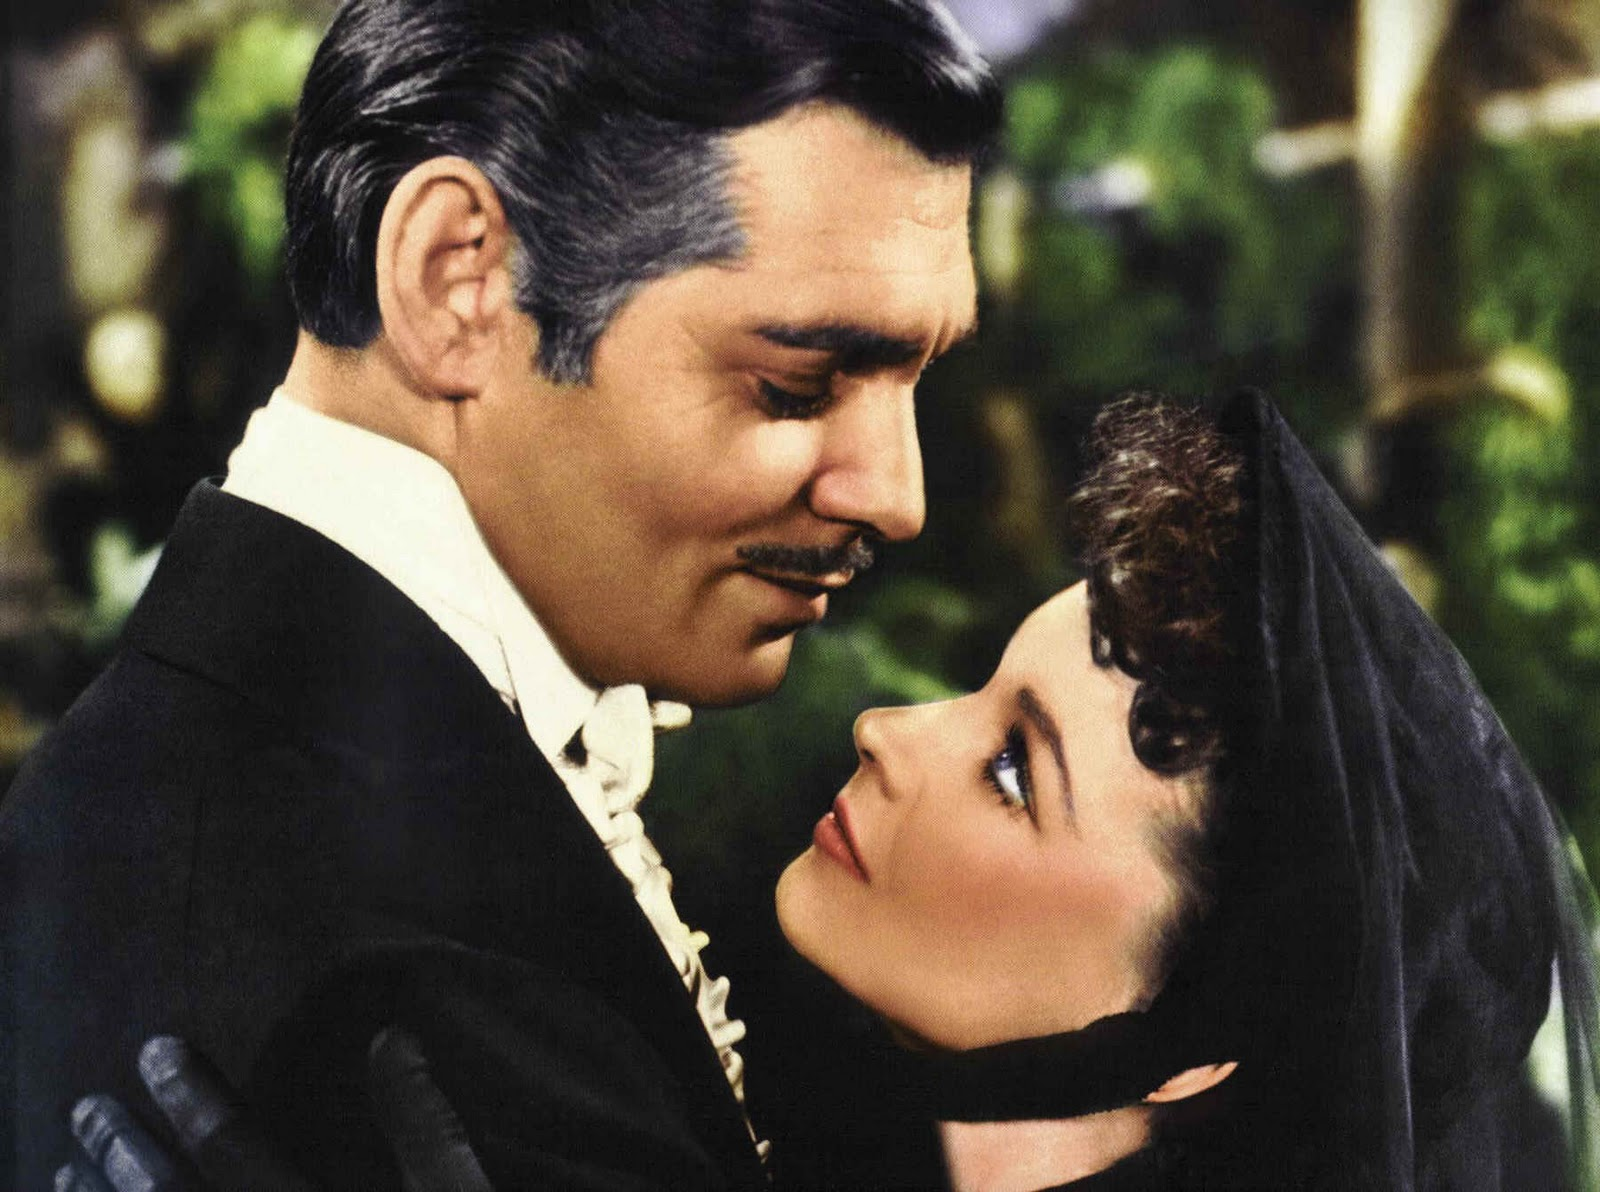 Wallpapers, Clip Art, and Images: Gone With The Wind